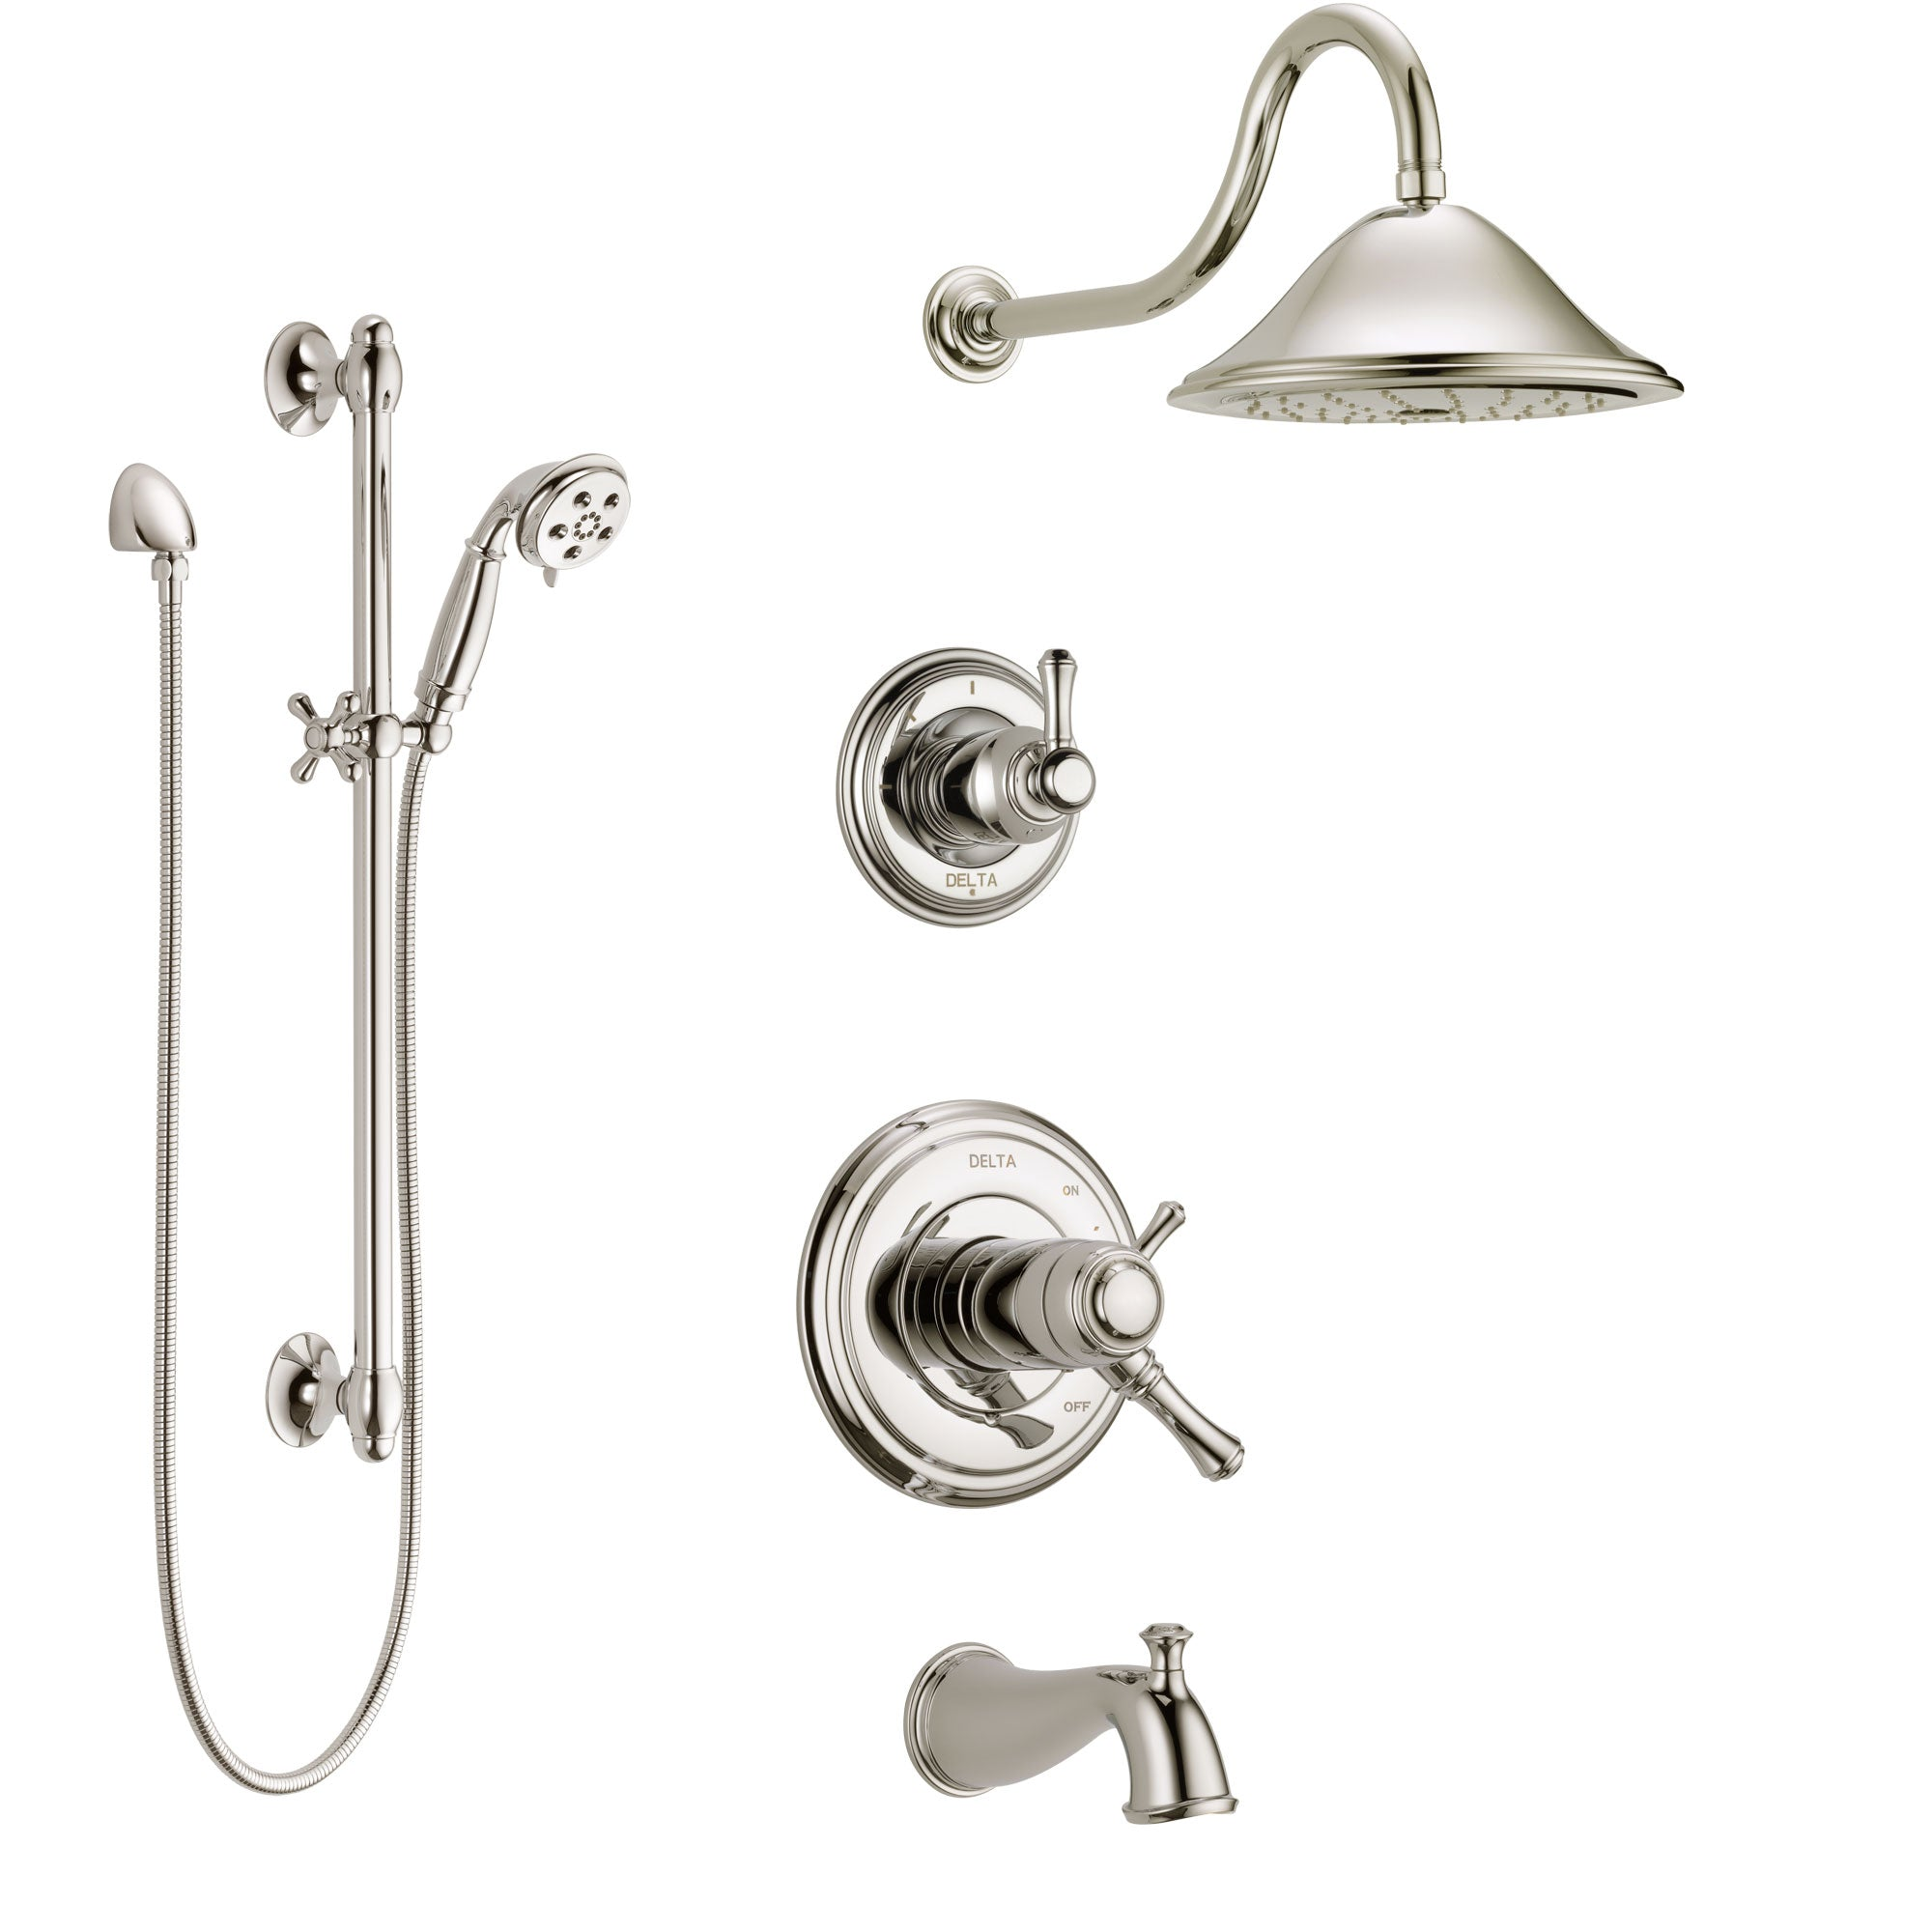 Delta Cassidy Polished Nickel Tub and Shower System with Dual Thermostatic Control Handle, Diverter, Showerhead, and Hand Shower SS17T4972PN2